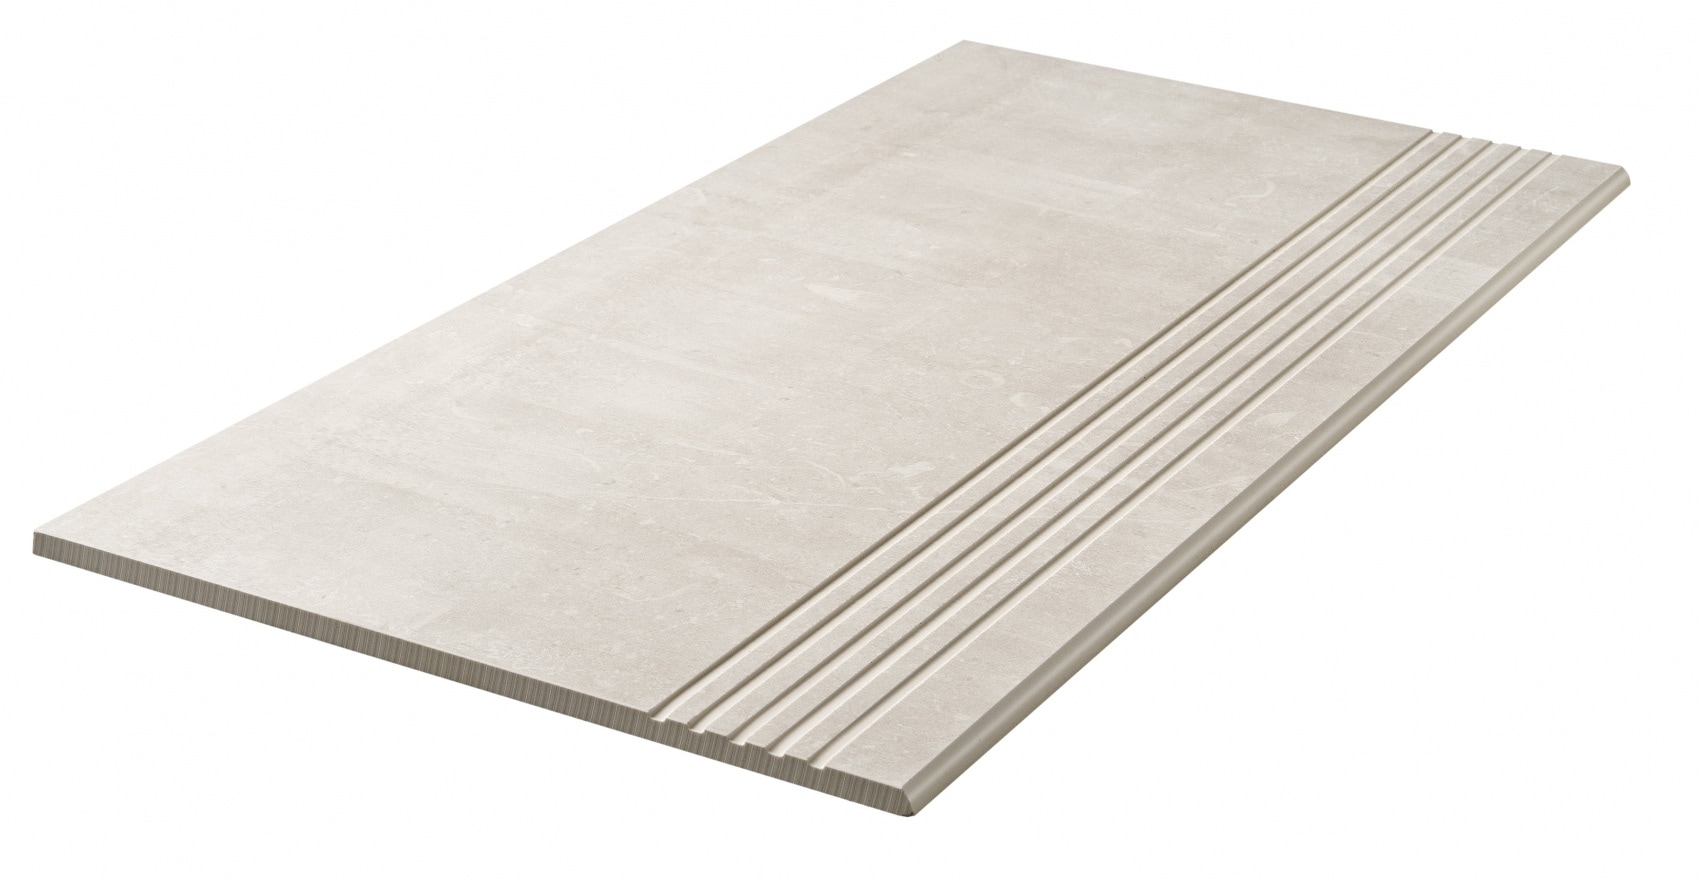 Bricmate J STEP LIMESTONE IVORY 297x596 (mm)